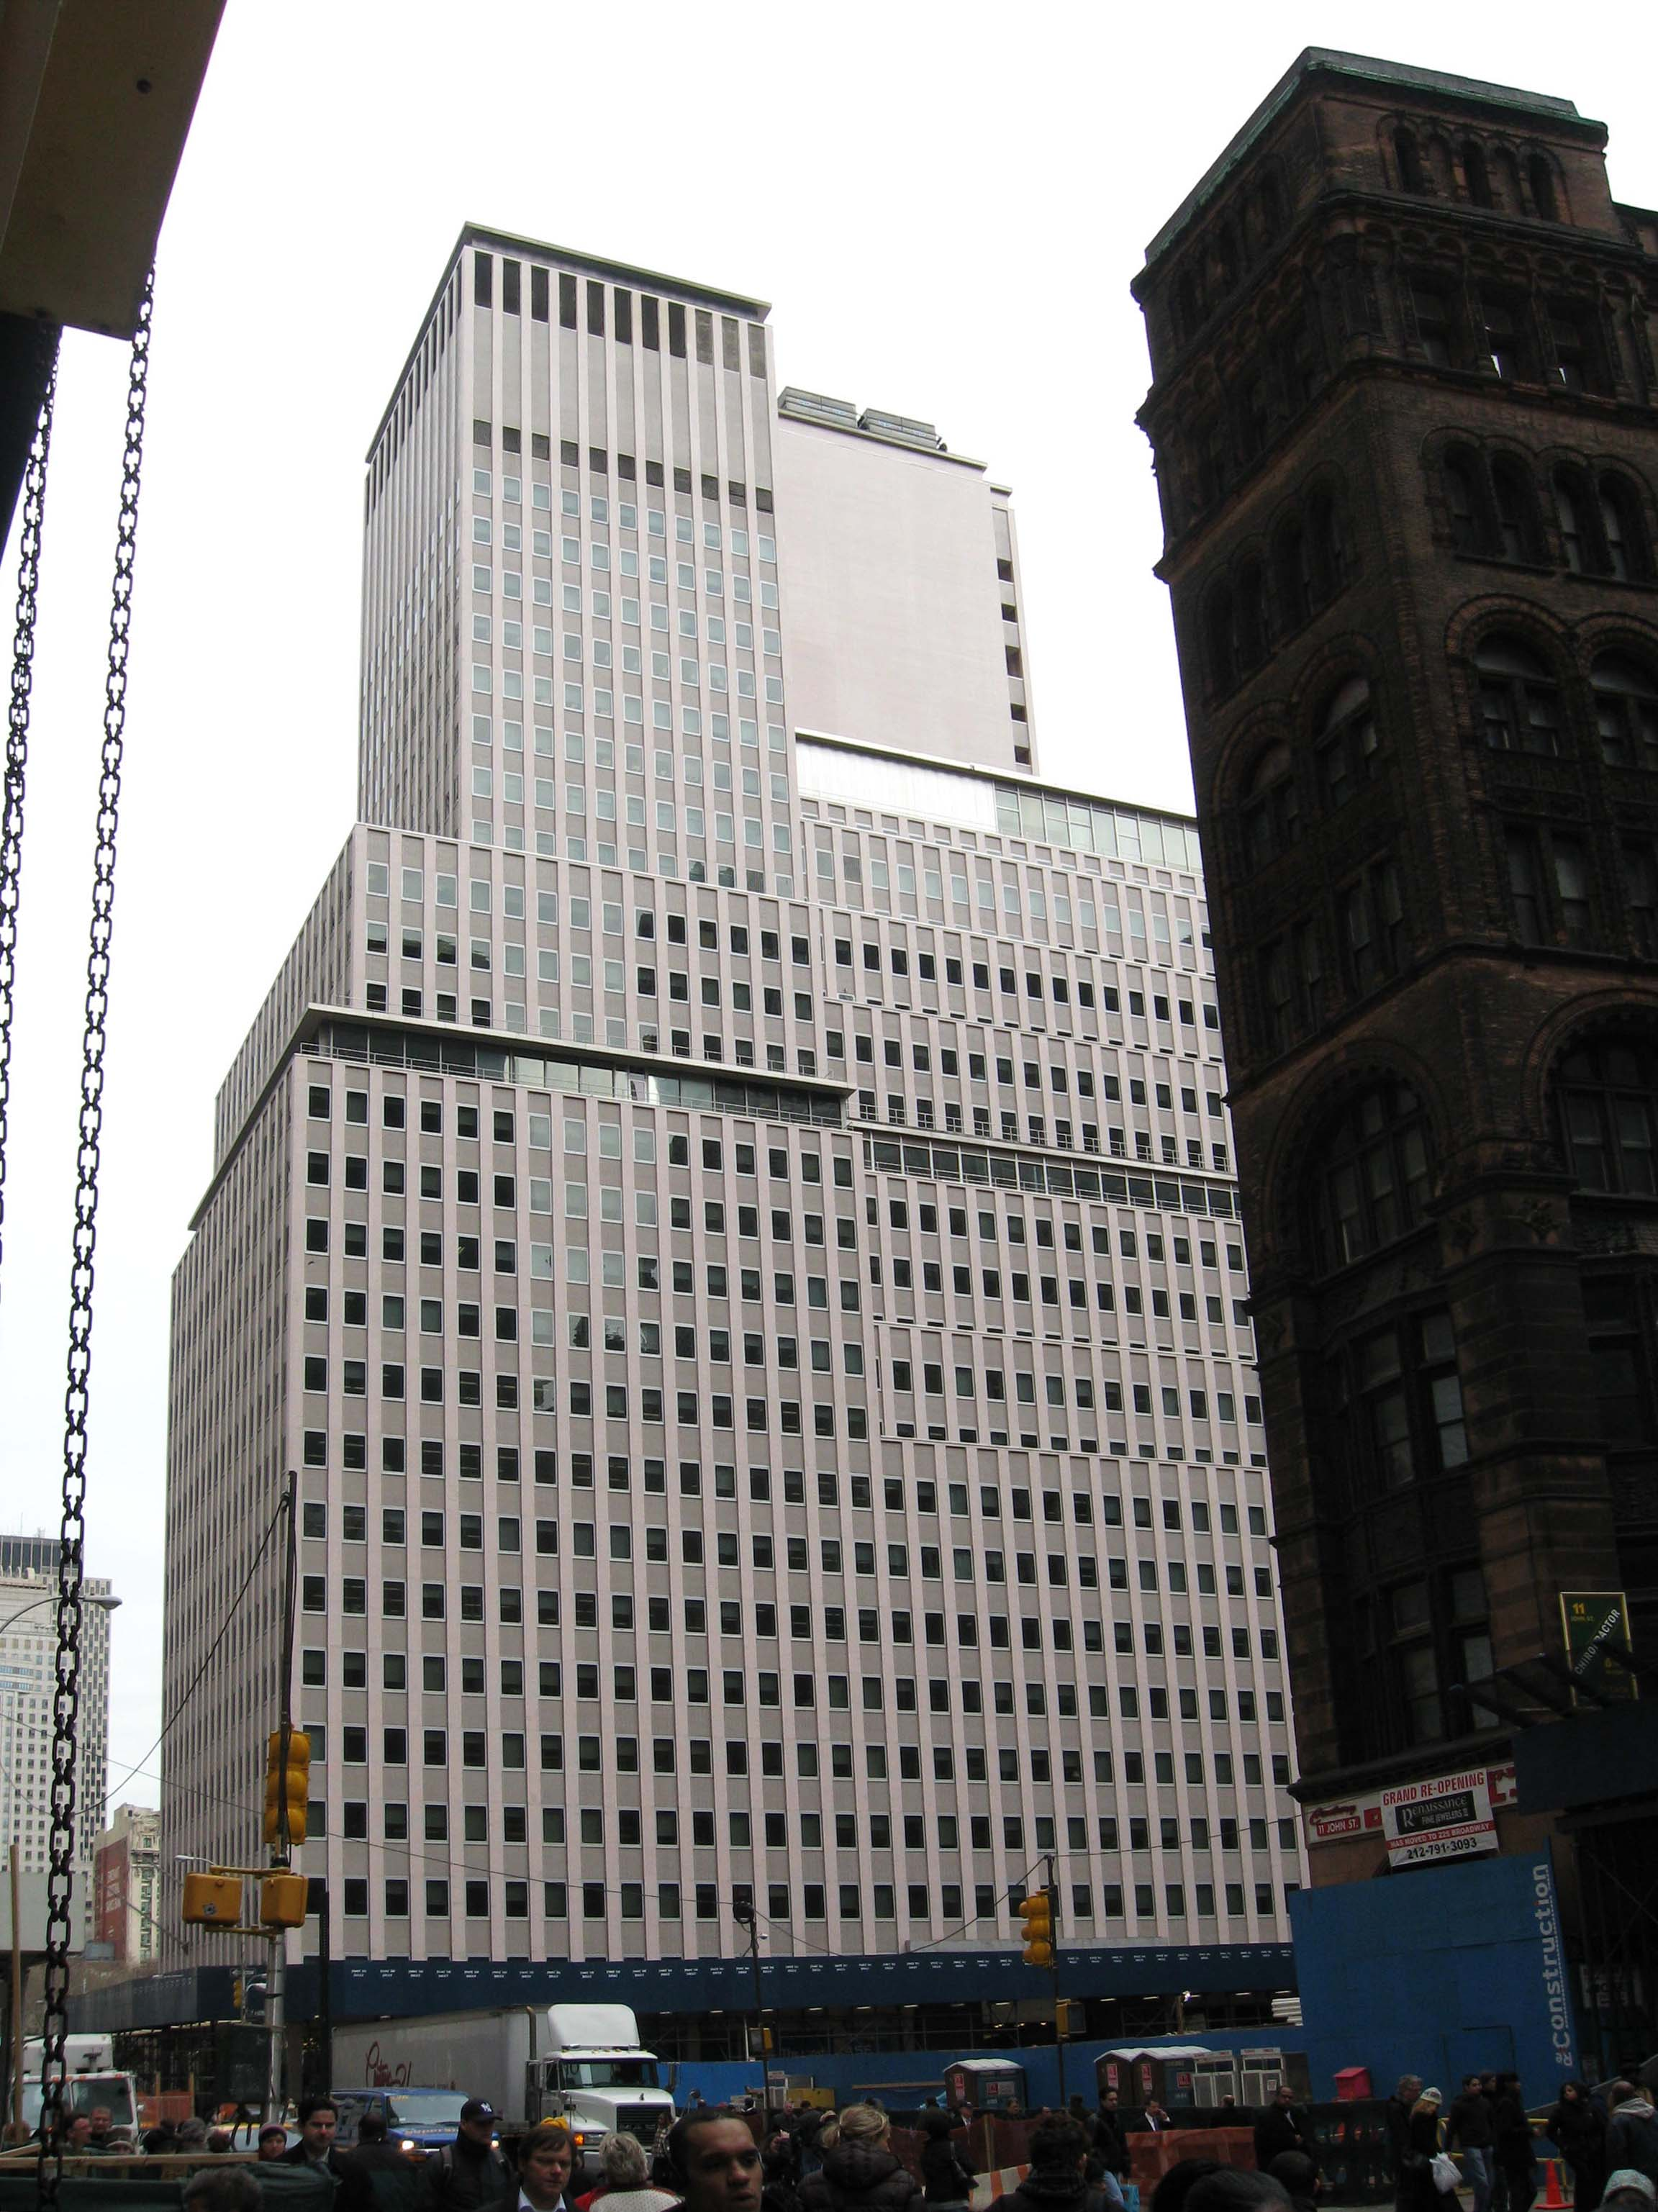 Western Electric Wikipedia Payphone Wiring Diagram Weco Hq At 222 Broadway Until 1984